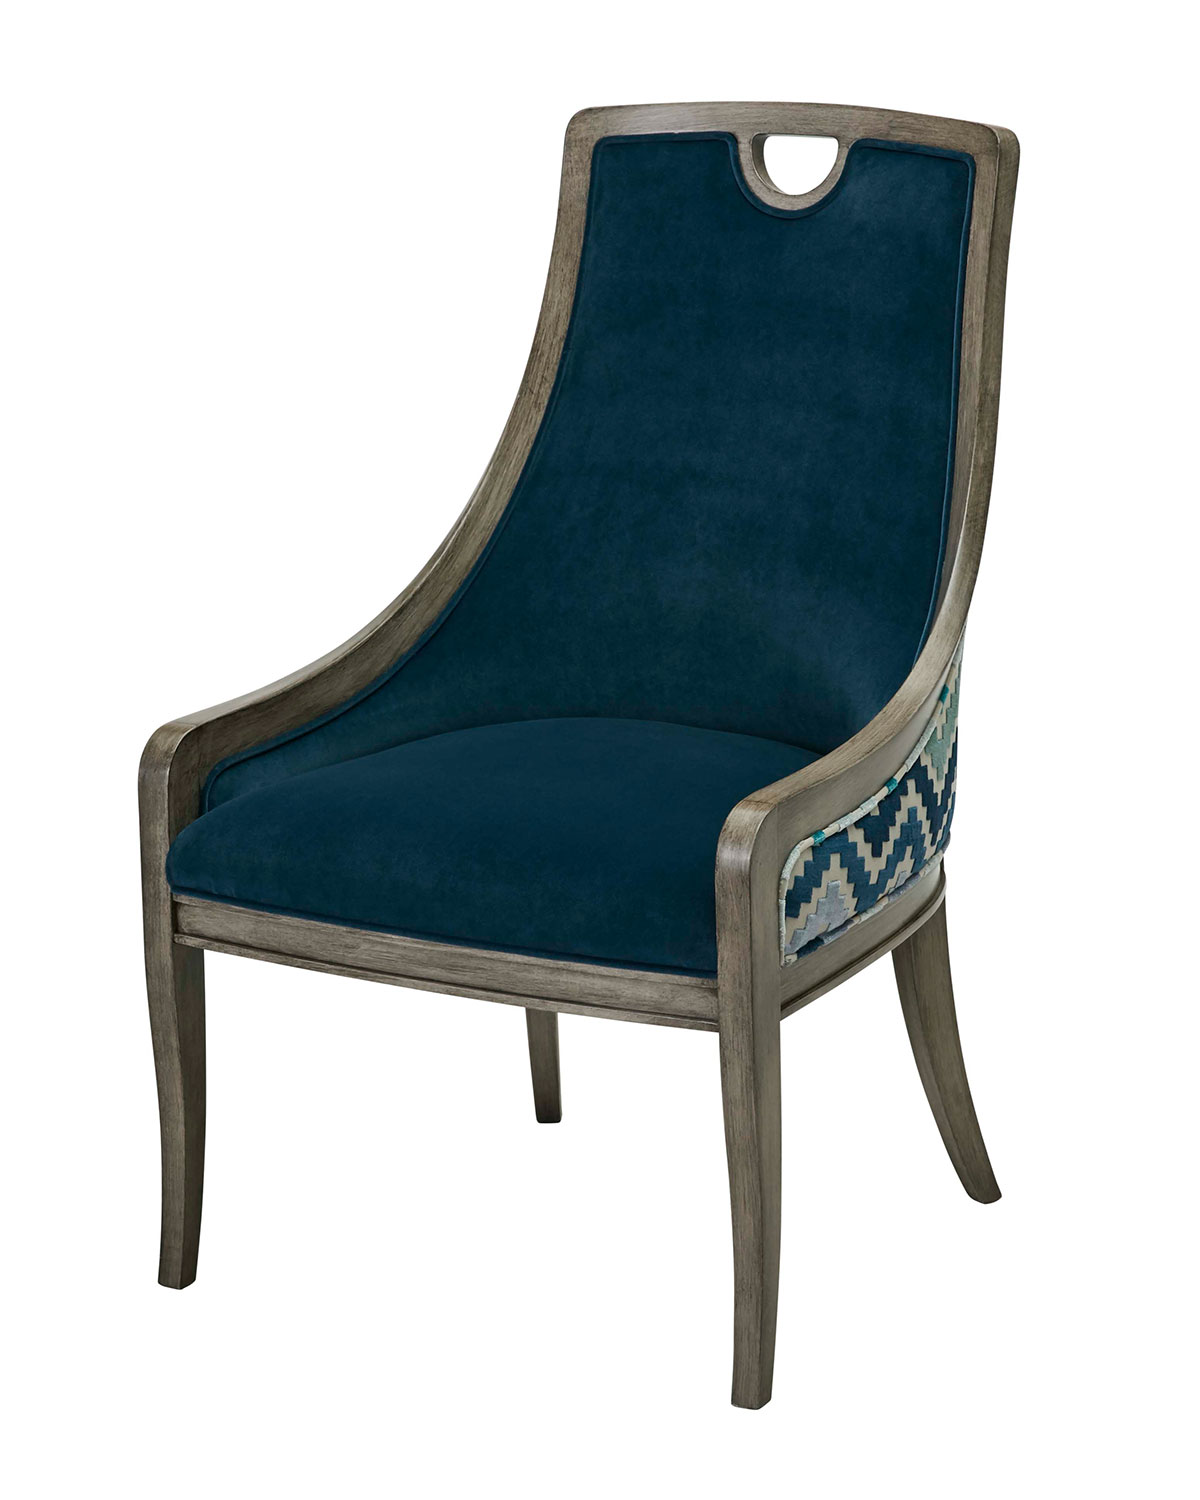 OneofaKind Keyhole Chair